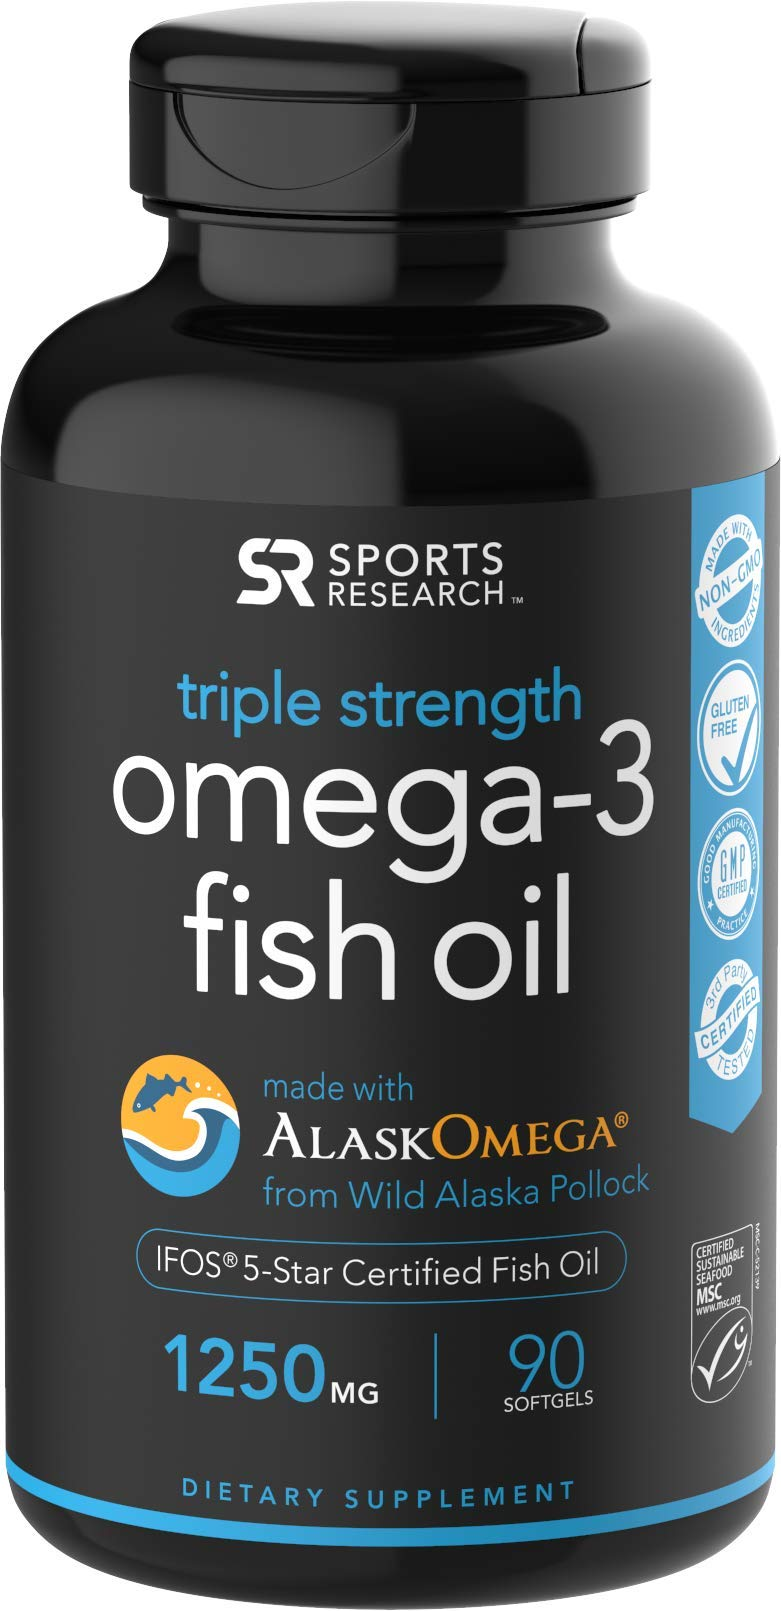 Omega-3 Wild Alaskan Fish Oil (1250mg per Capsule) with Triglyceride EPA & DHA | Heart, Brain & Joint Support | IFOS 5 Star Certified, Non-GMO & Gluten Free - 90 day Supply! by Sports Research